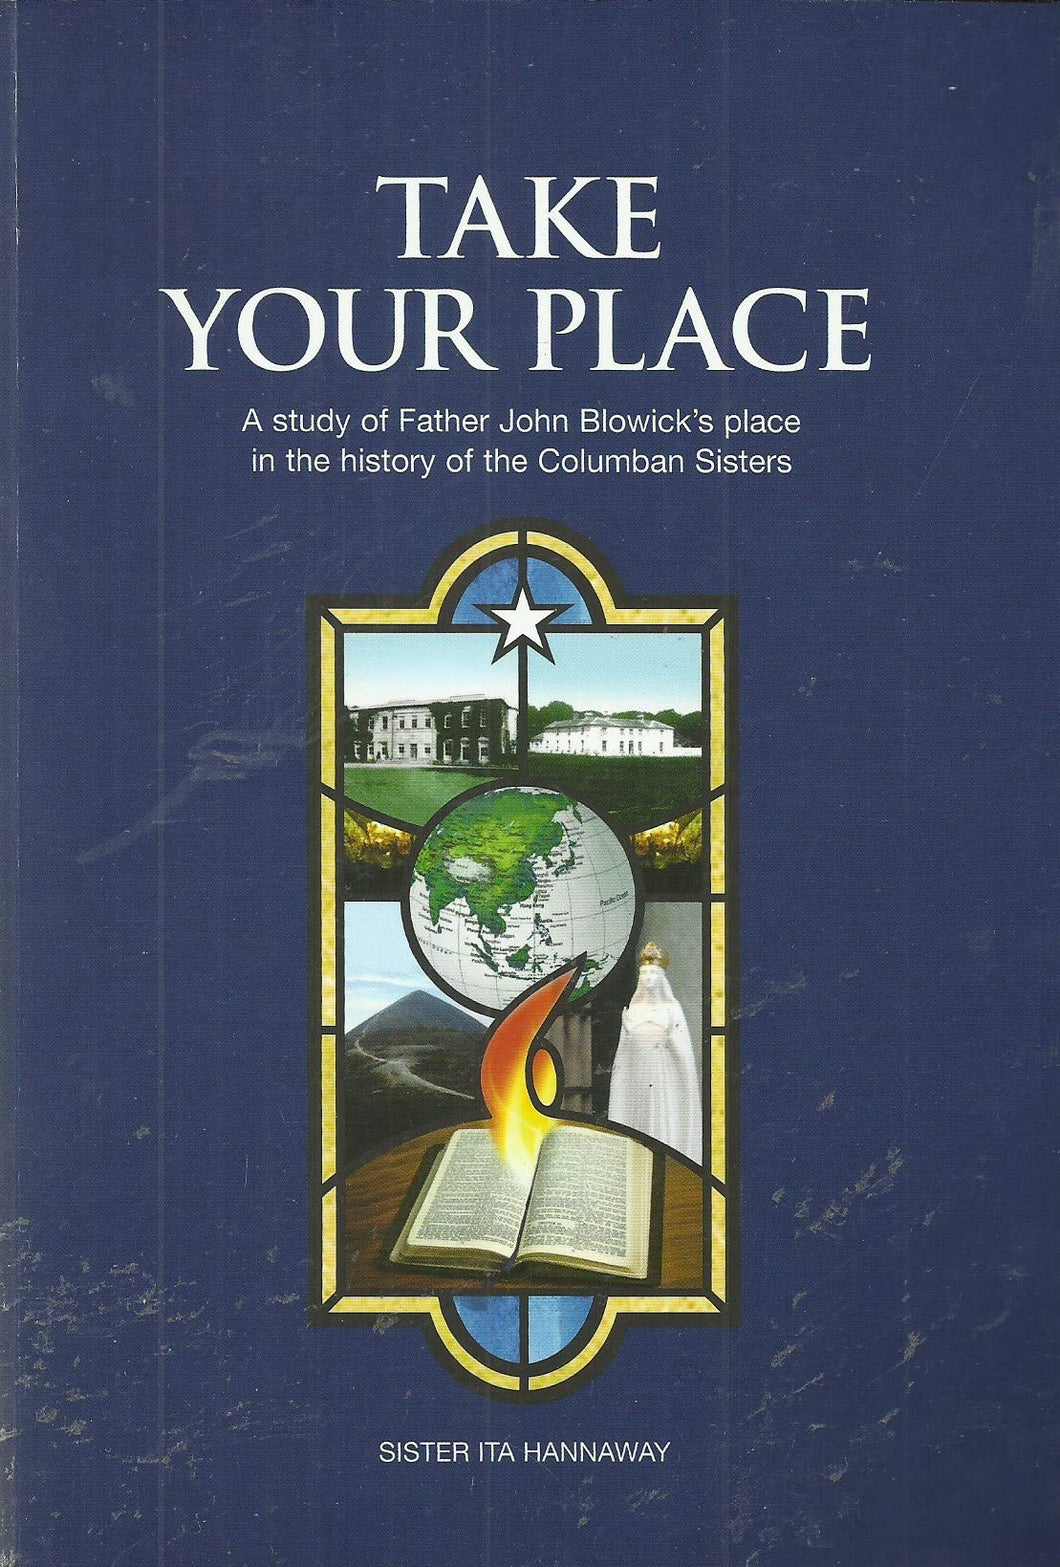 Take Your Place: A Study of Father John Blowick's Place in the History of the Columban Sisters